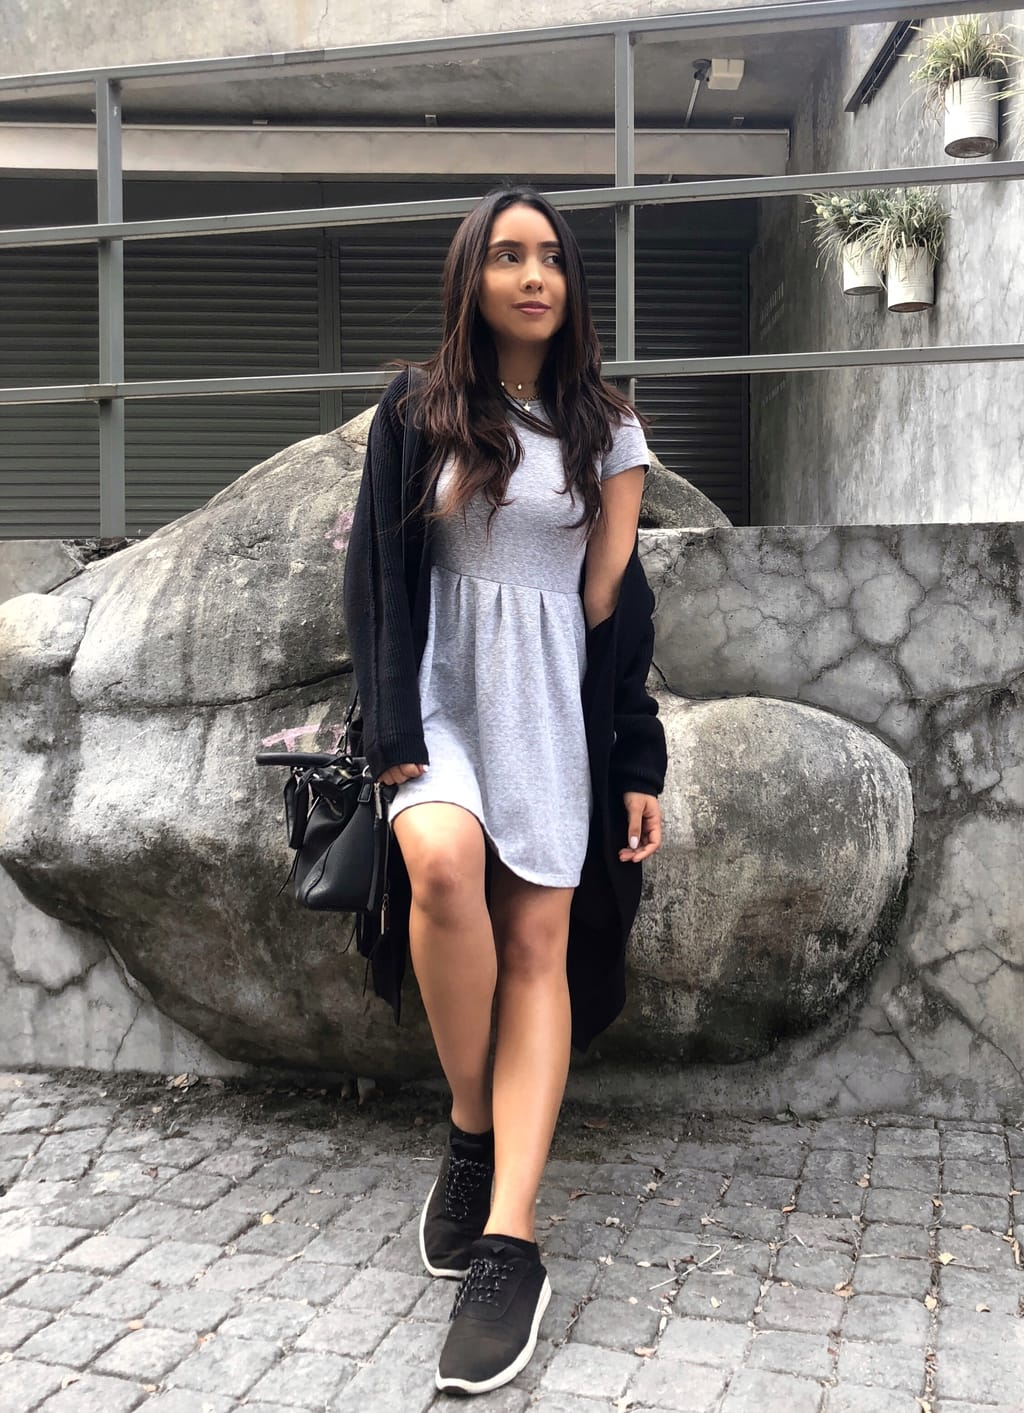 Cynthia wears a simple, grey, knit mini dress with a long, black Free People cardigan, and casual sneakers.